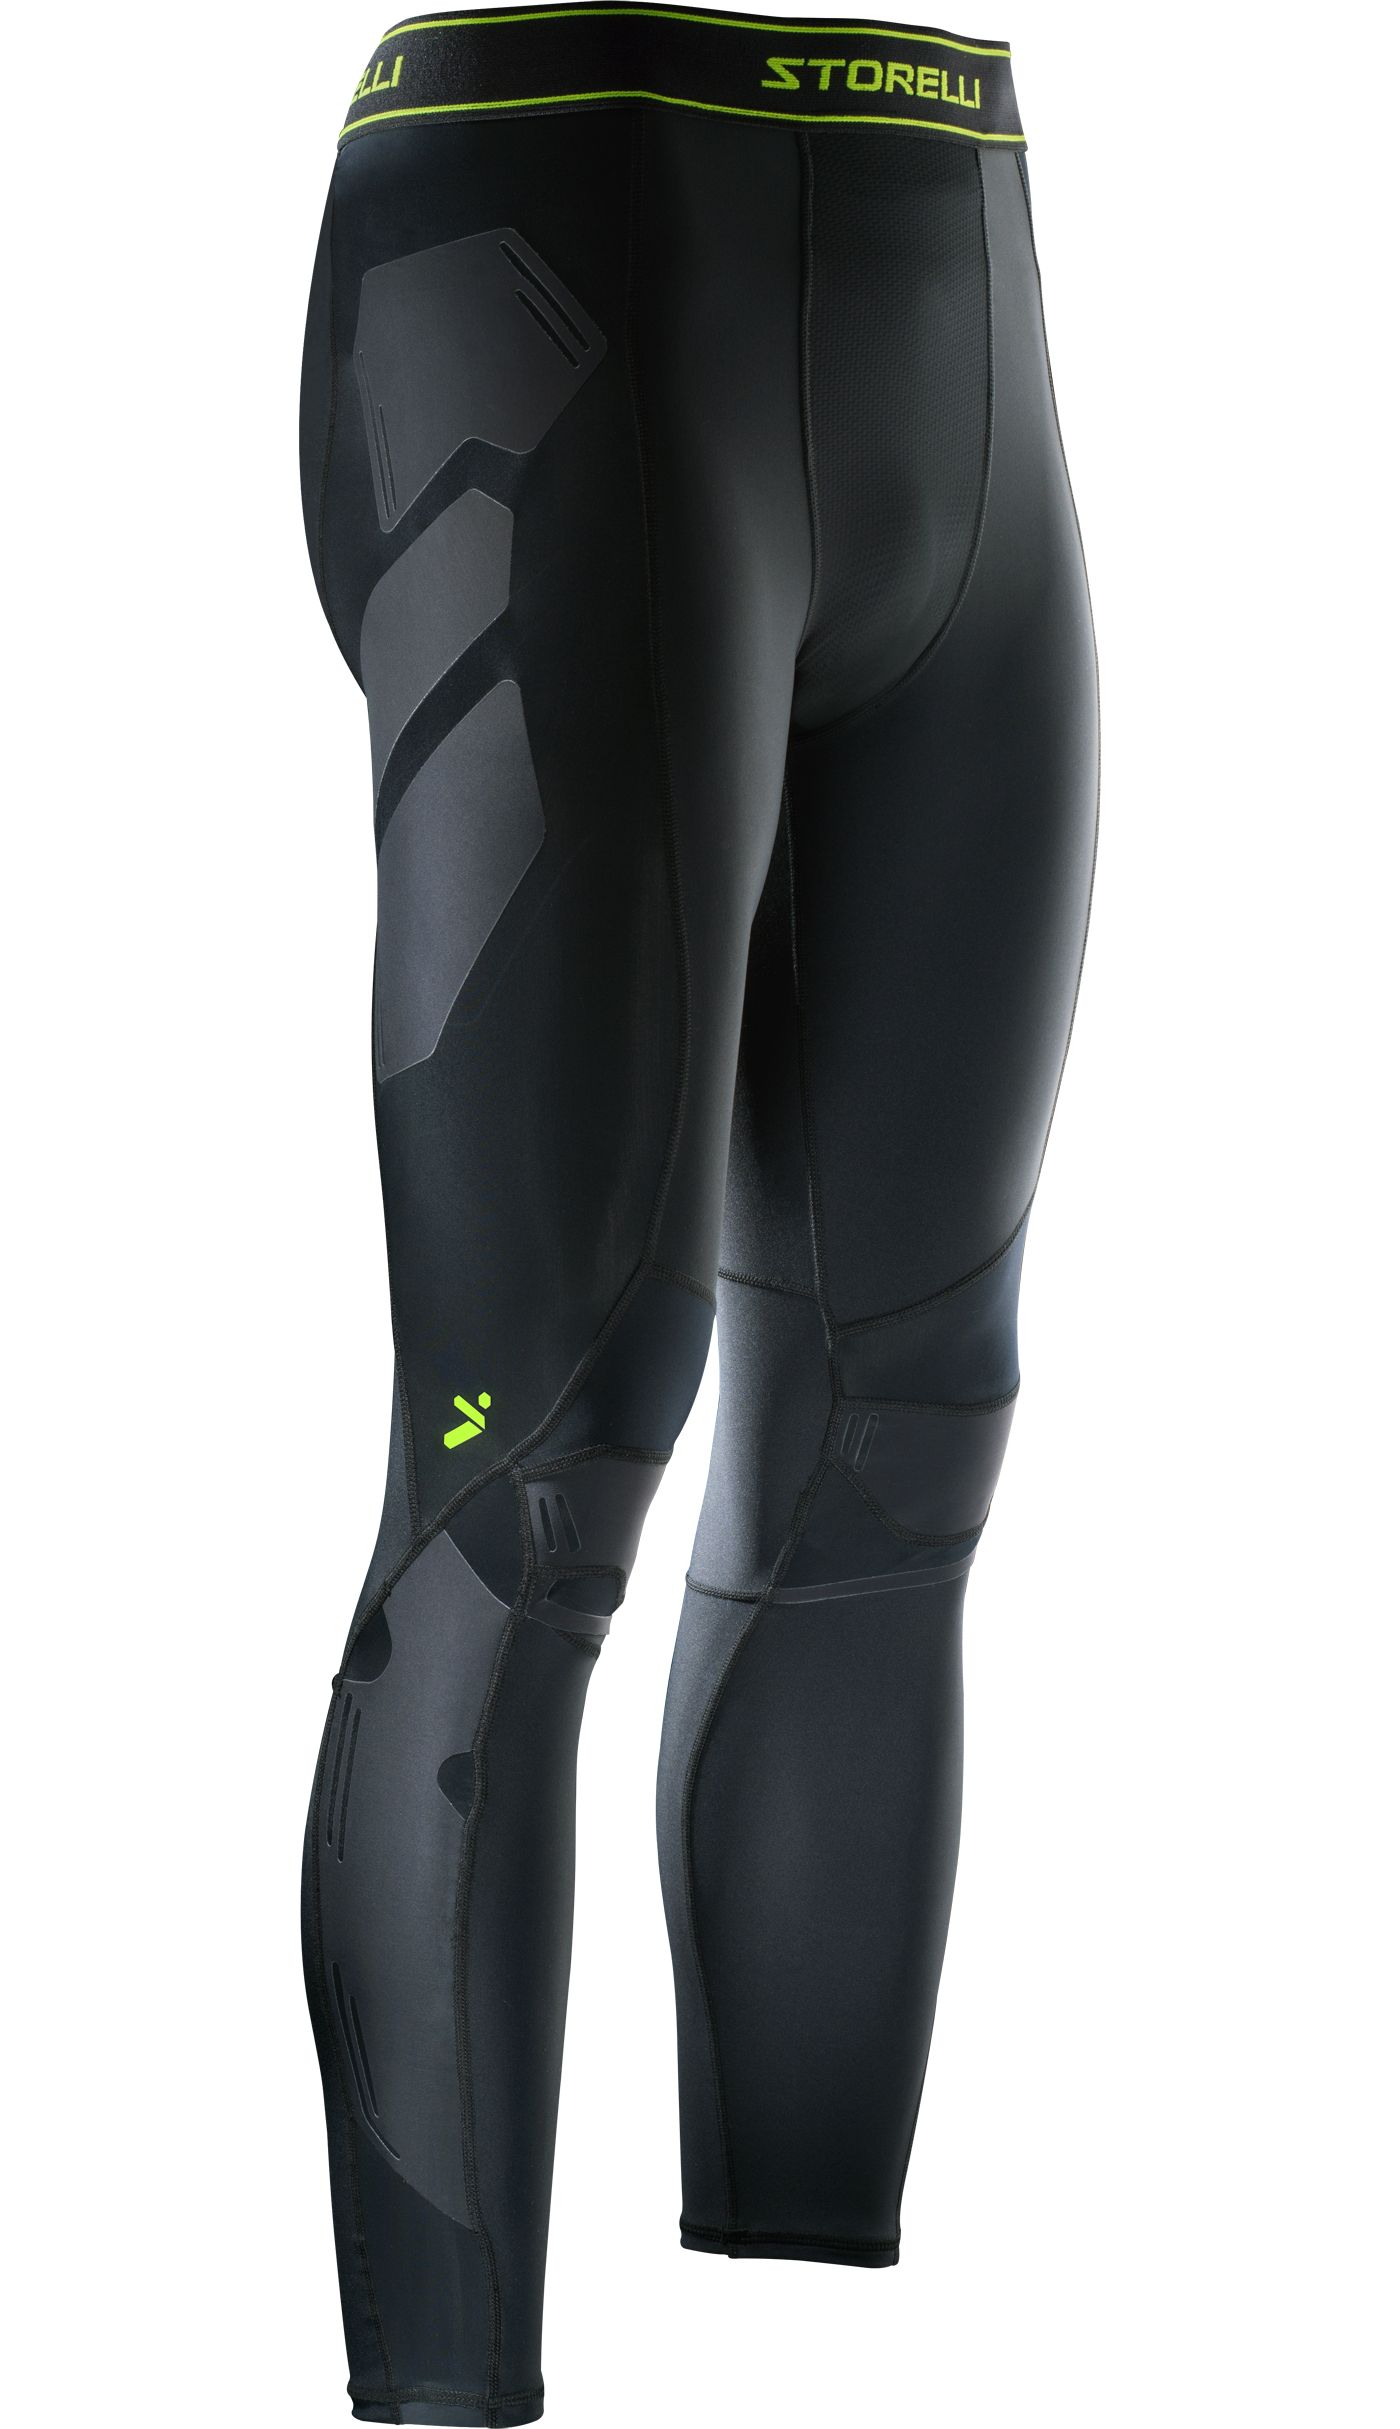 Storelli Adult BodyShield Anti-Abrasion Soccer Leggings